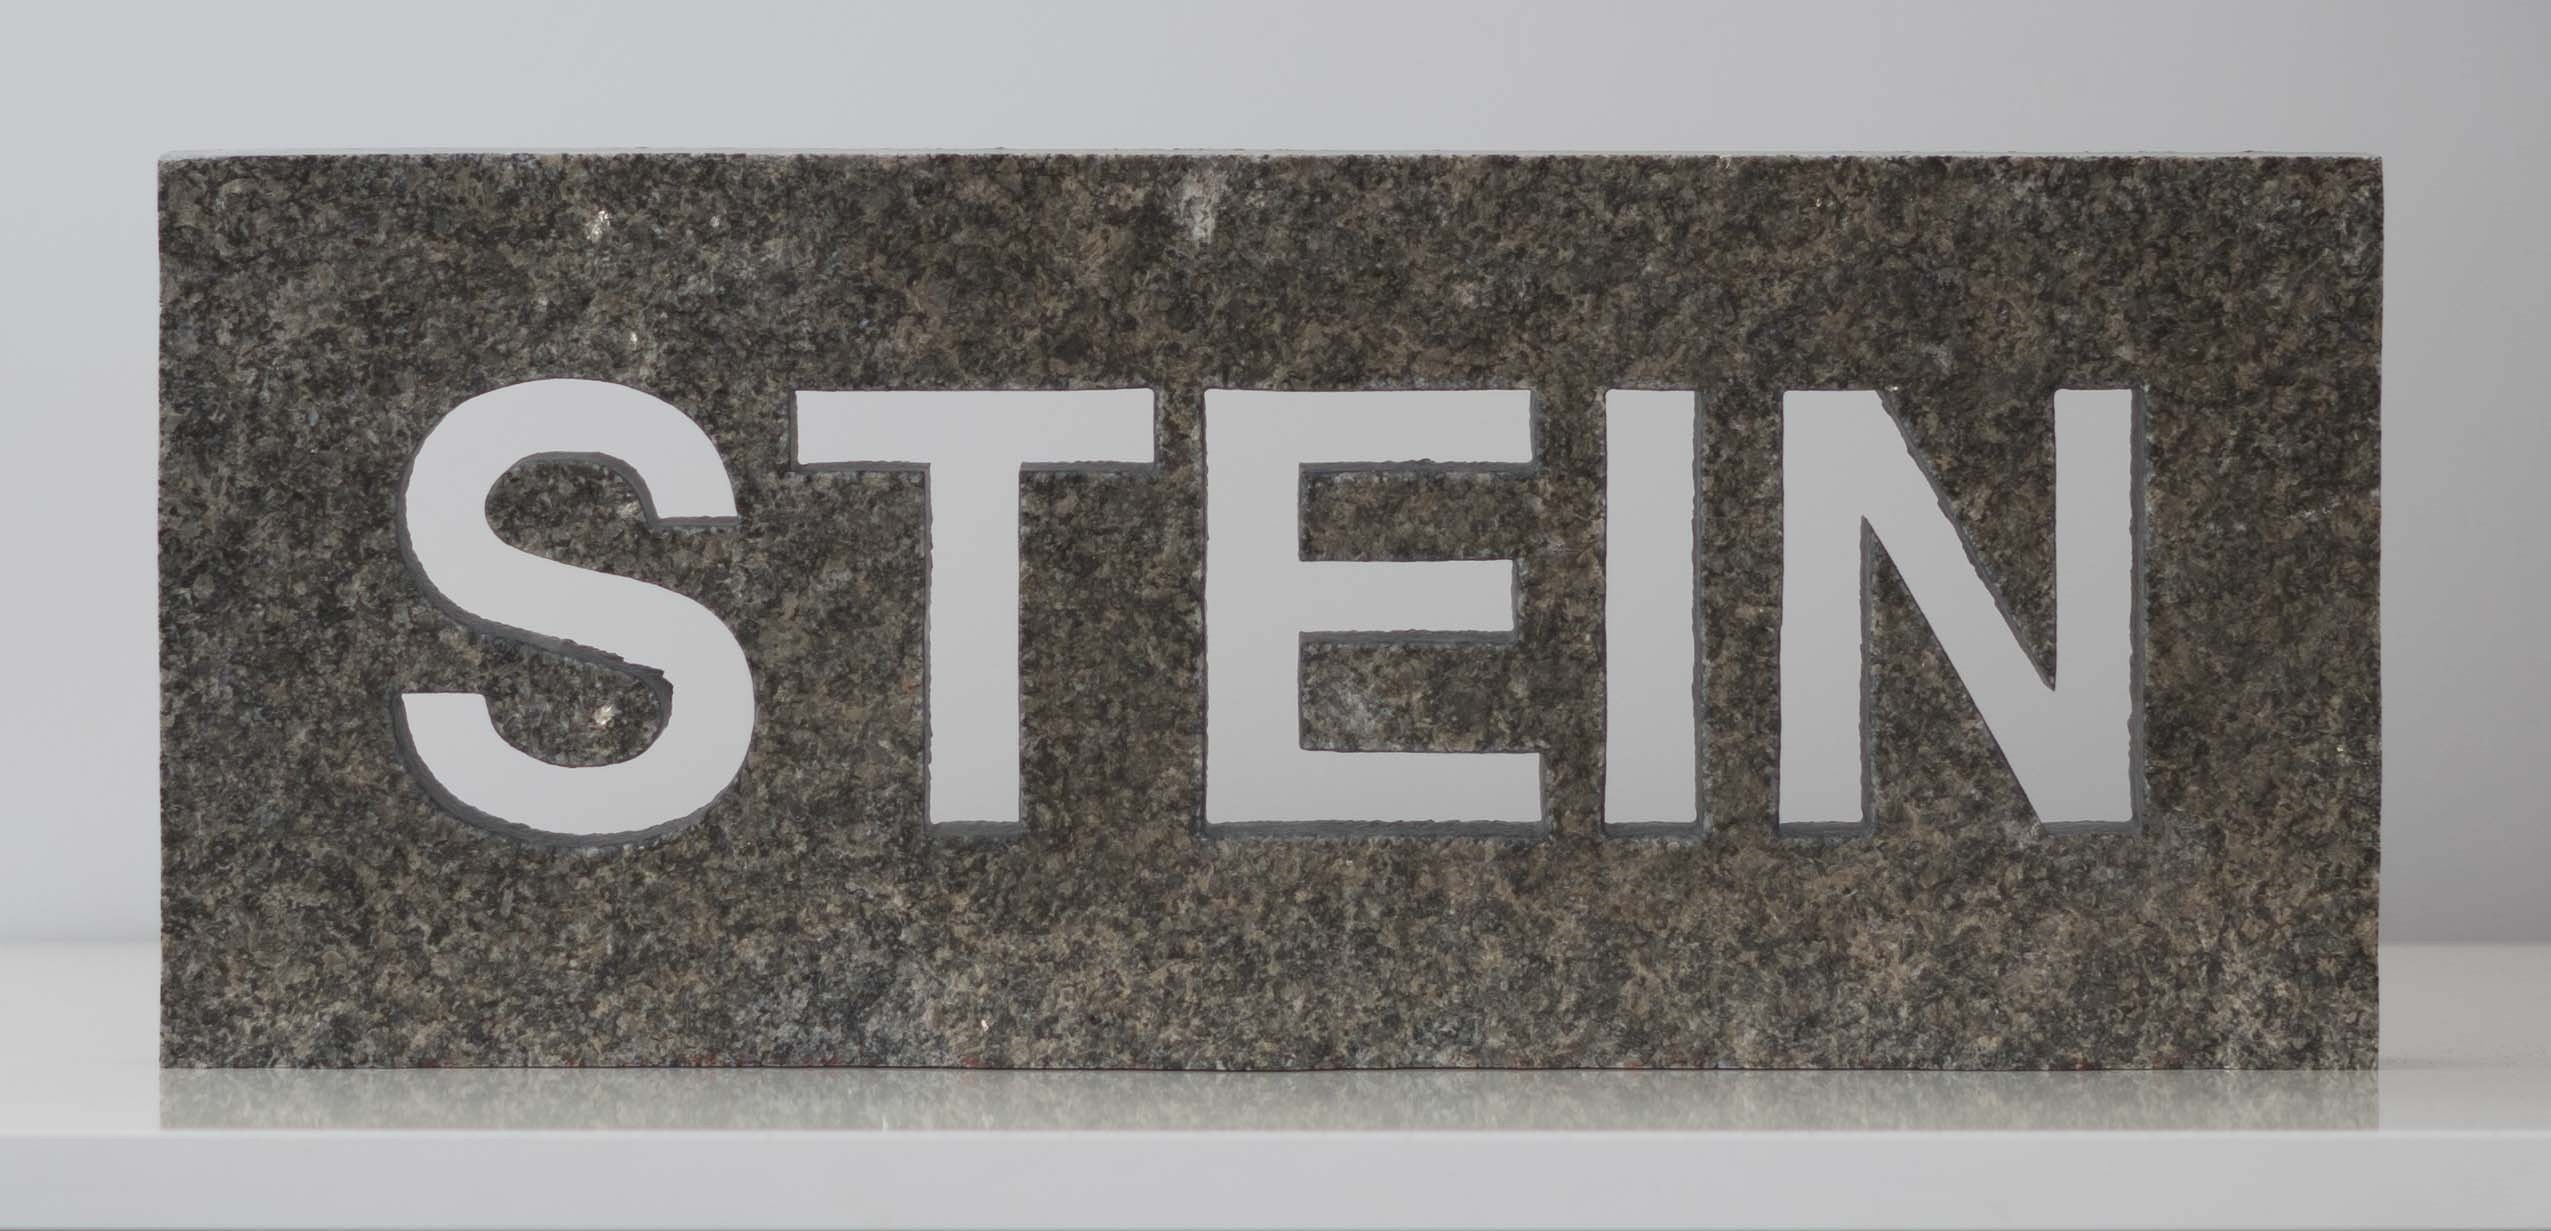 "Stein als Wort (Stone as a Word; on request also a version with the word ""STONE""), original Avant-Garde Granite Sculpture by Goeth Zilla"